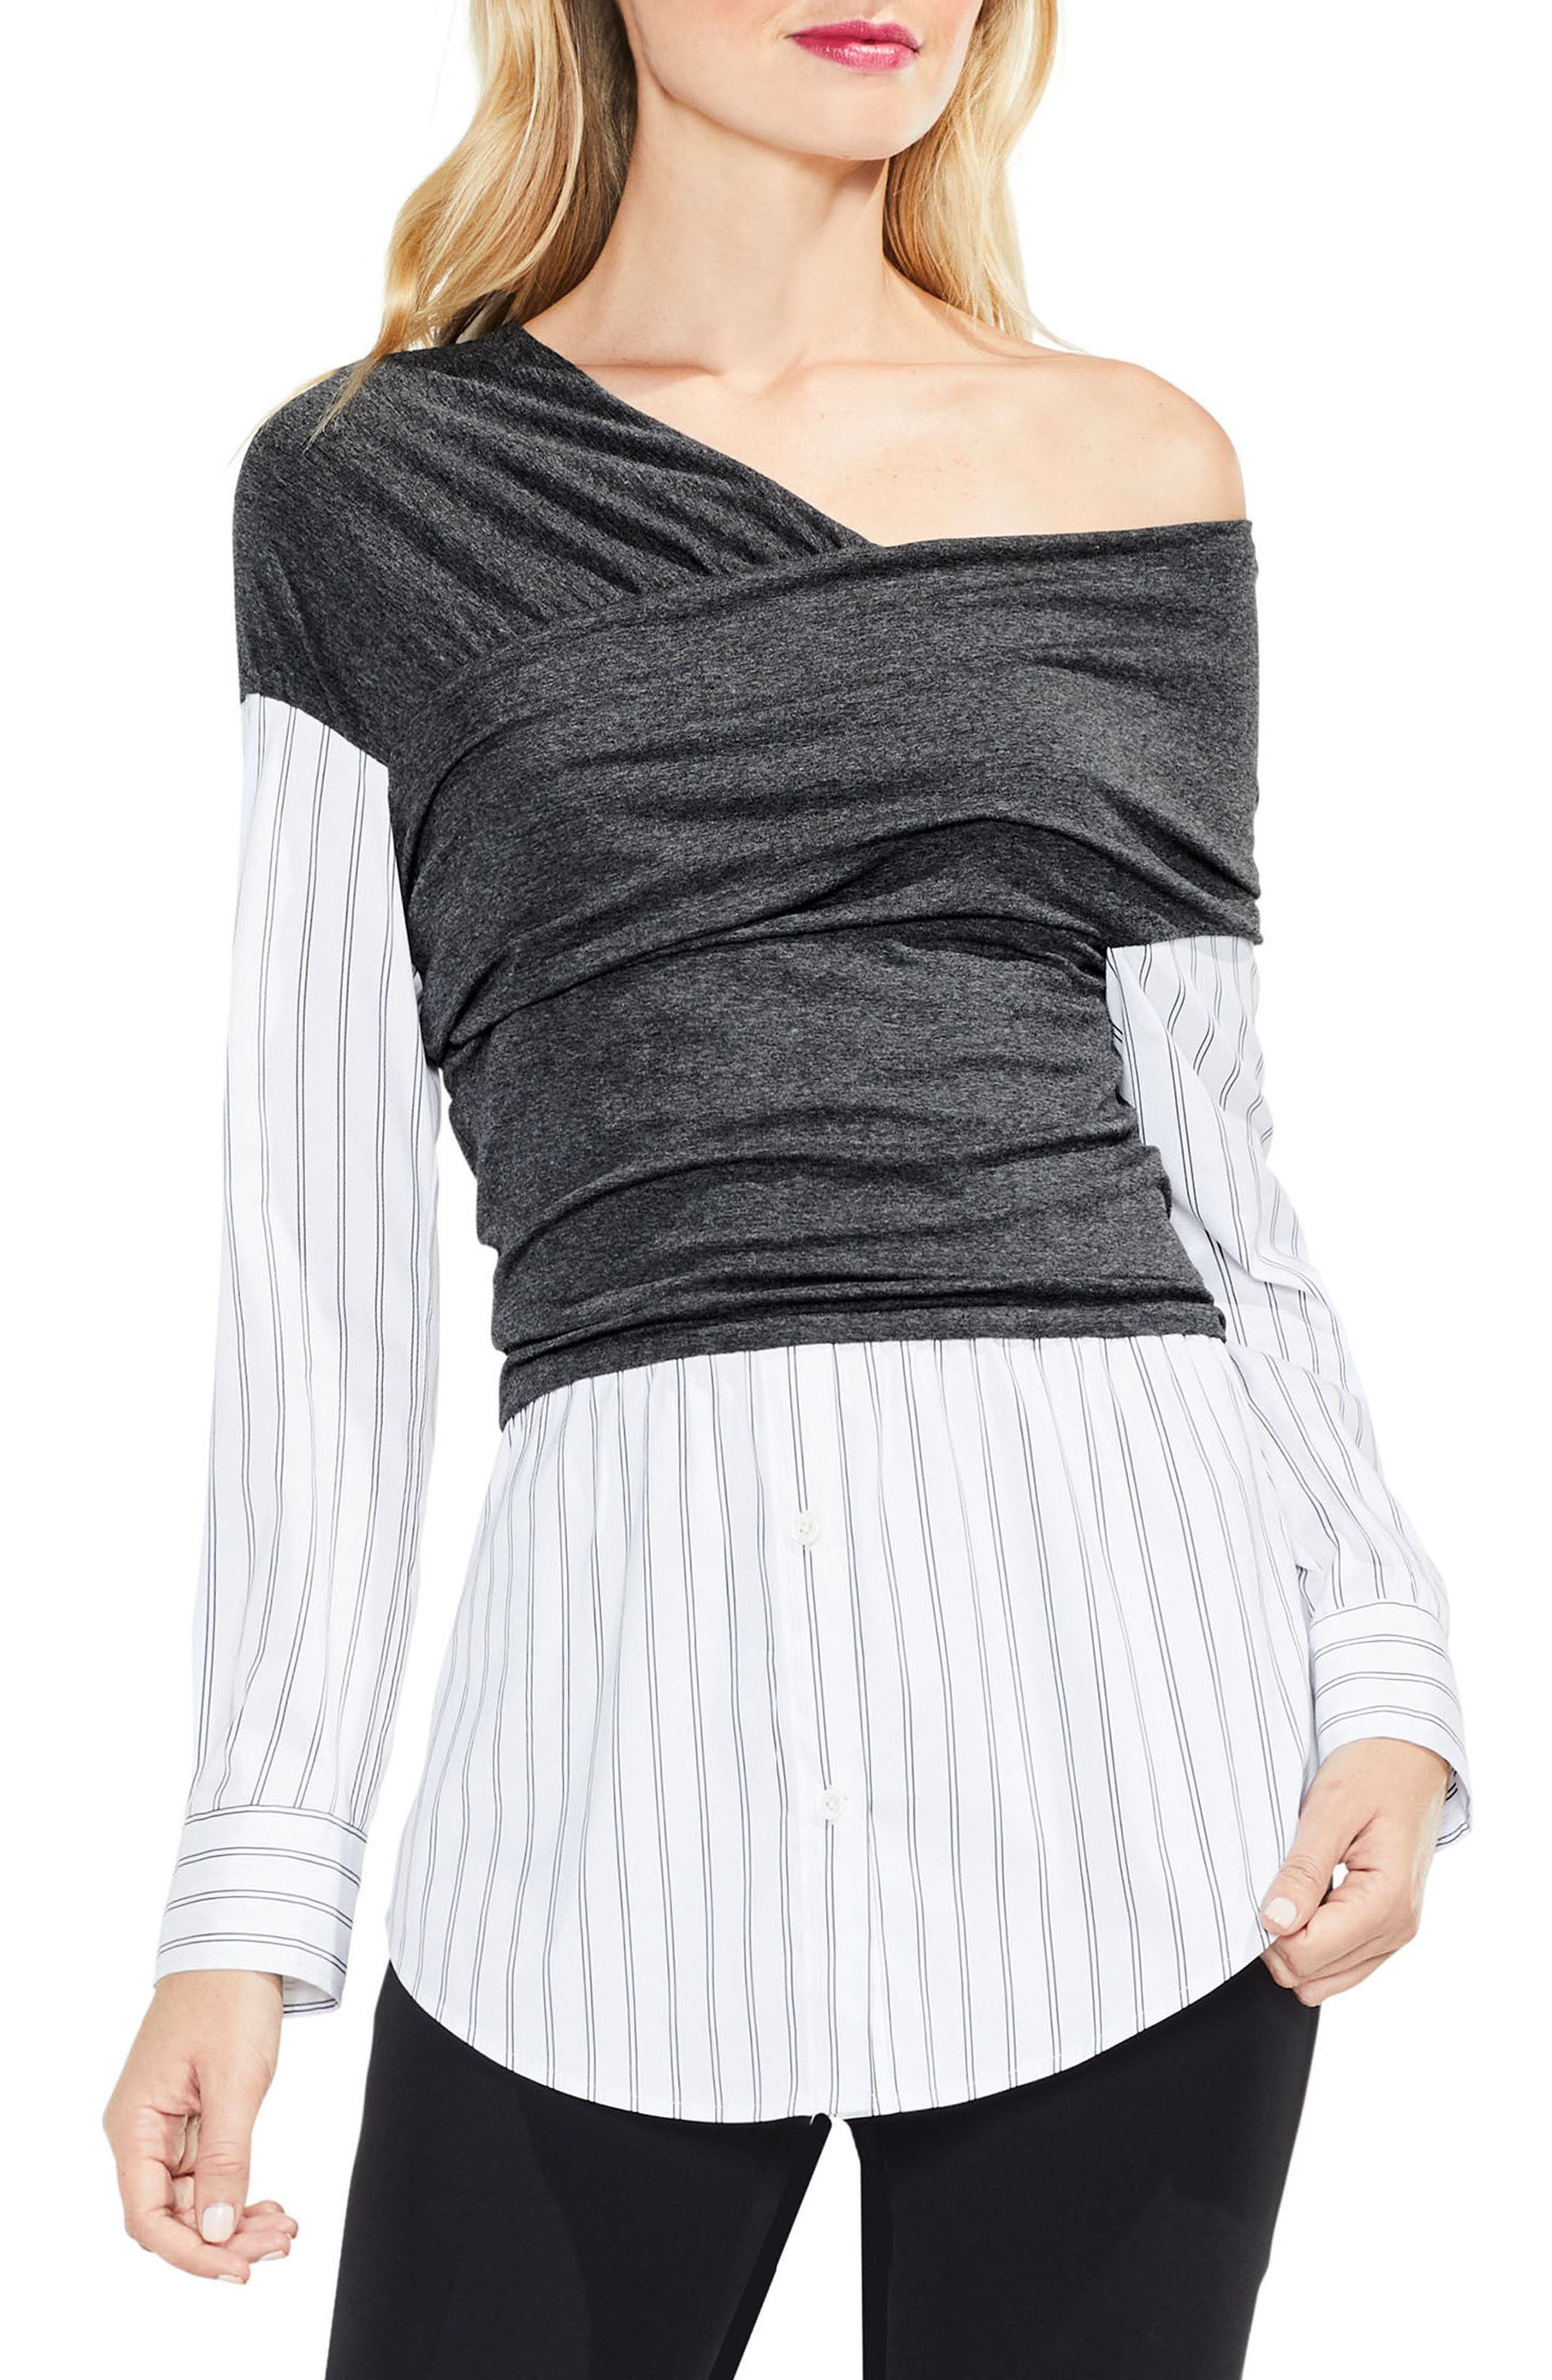 Main Image - Vince Camuto One-Shoulder Layered Look Top